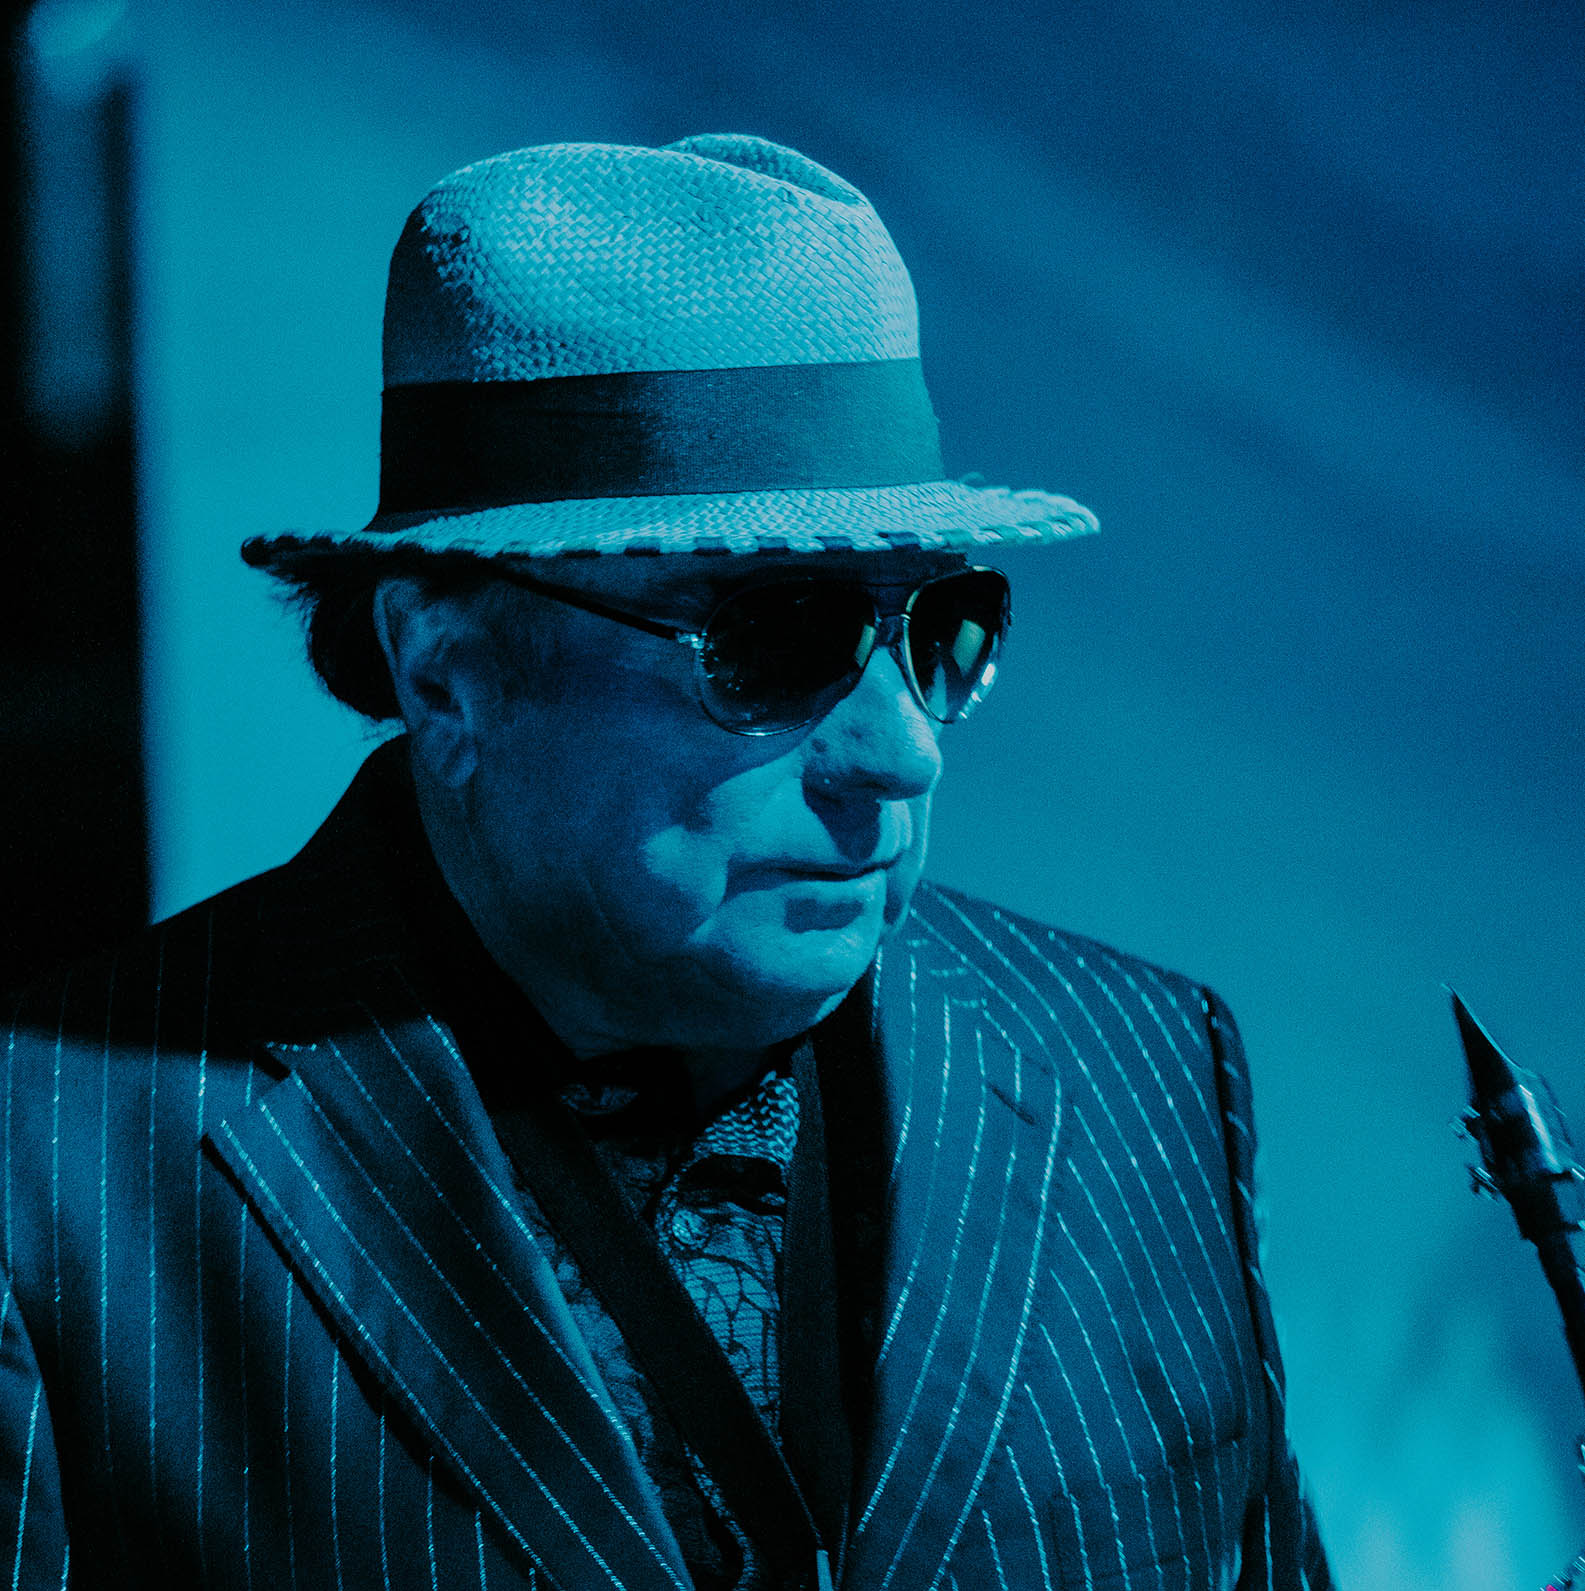 VAN MORRISON shares new single 'Only A Song' from 'Latest Record Project: Volume 1'